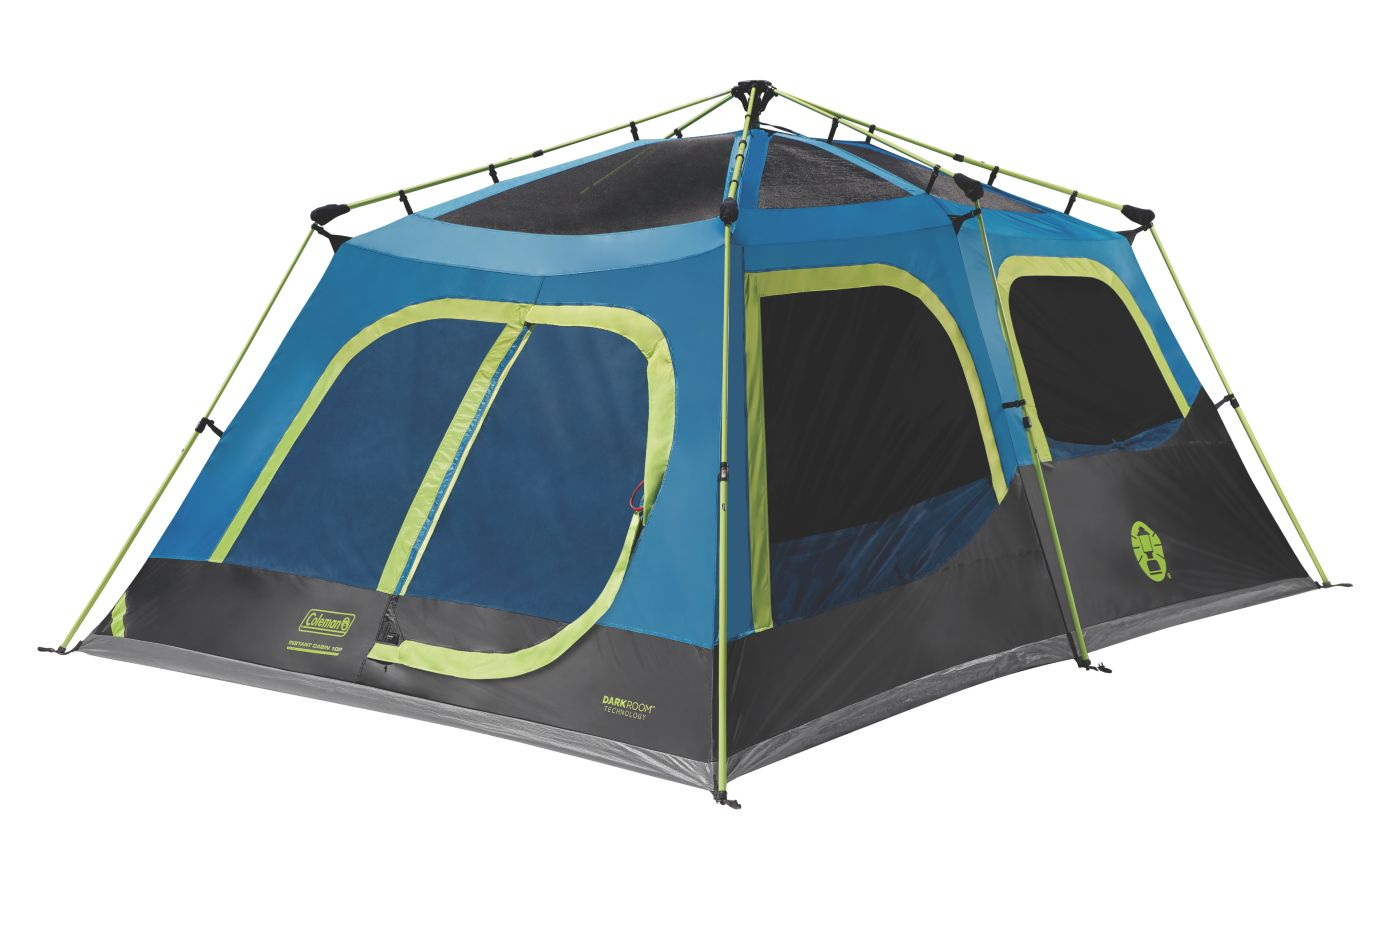 10-Person Dark Room Instant Cabin Tent with Rainfly  sc 1 st  Coleman : coleman instant up tent 3 person - memphite.com